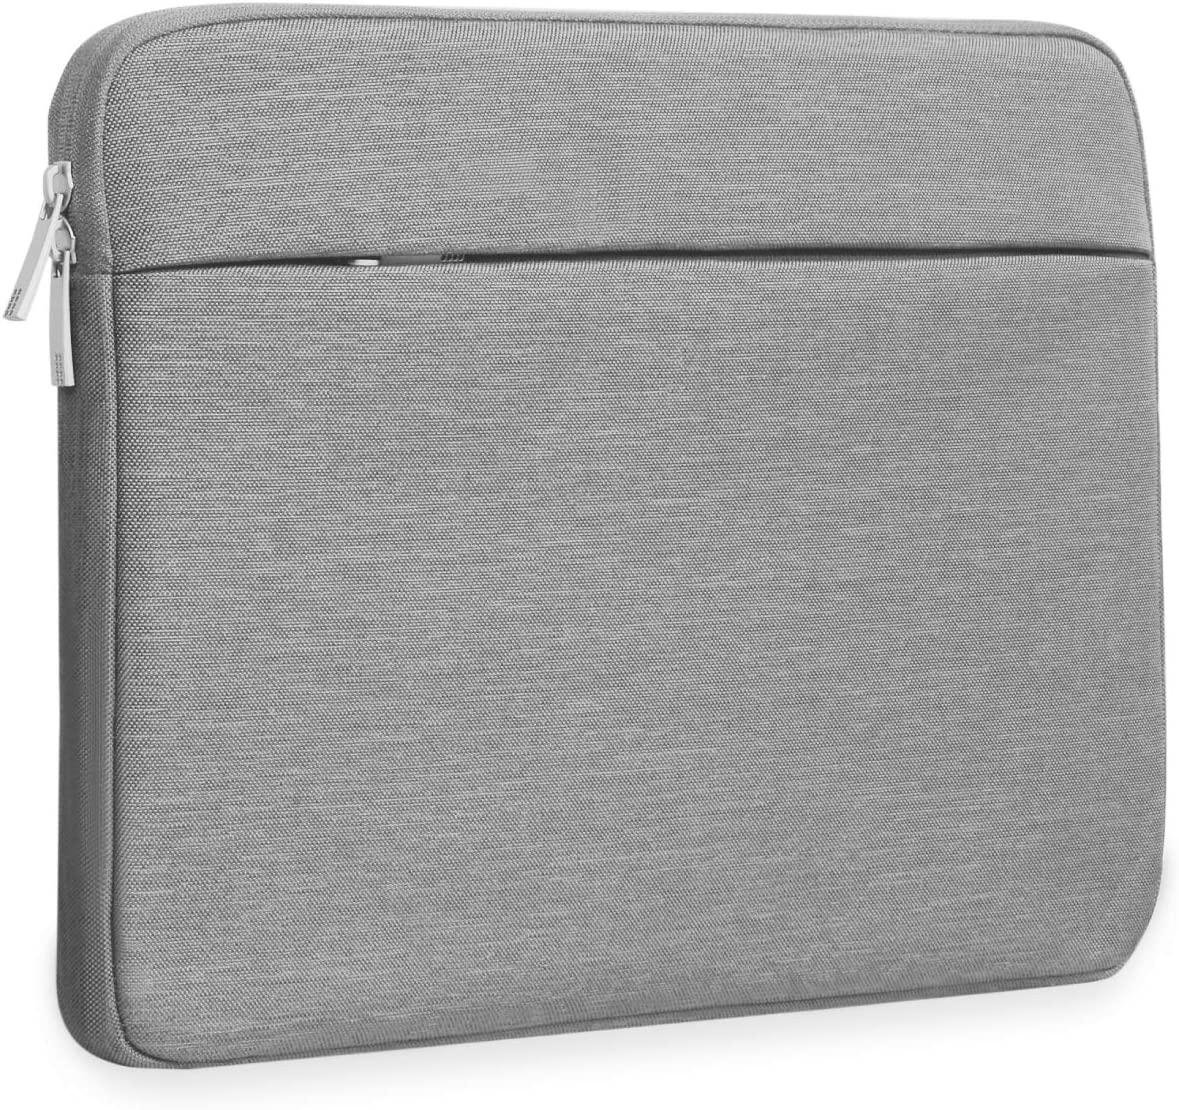 JIMISHA Laptop Sleeve Case Bag Compatible with 13-13.3 Inch MacBook Pro, MacBook Air, Notebook, Polyester Vertical Style Water Repellent Briefcase